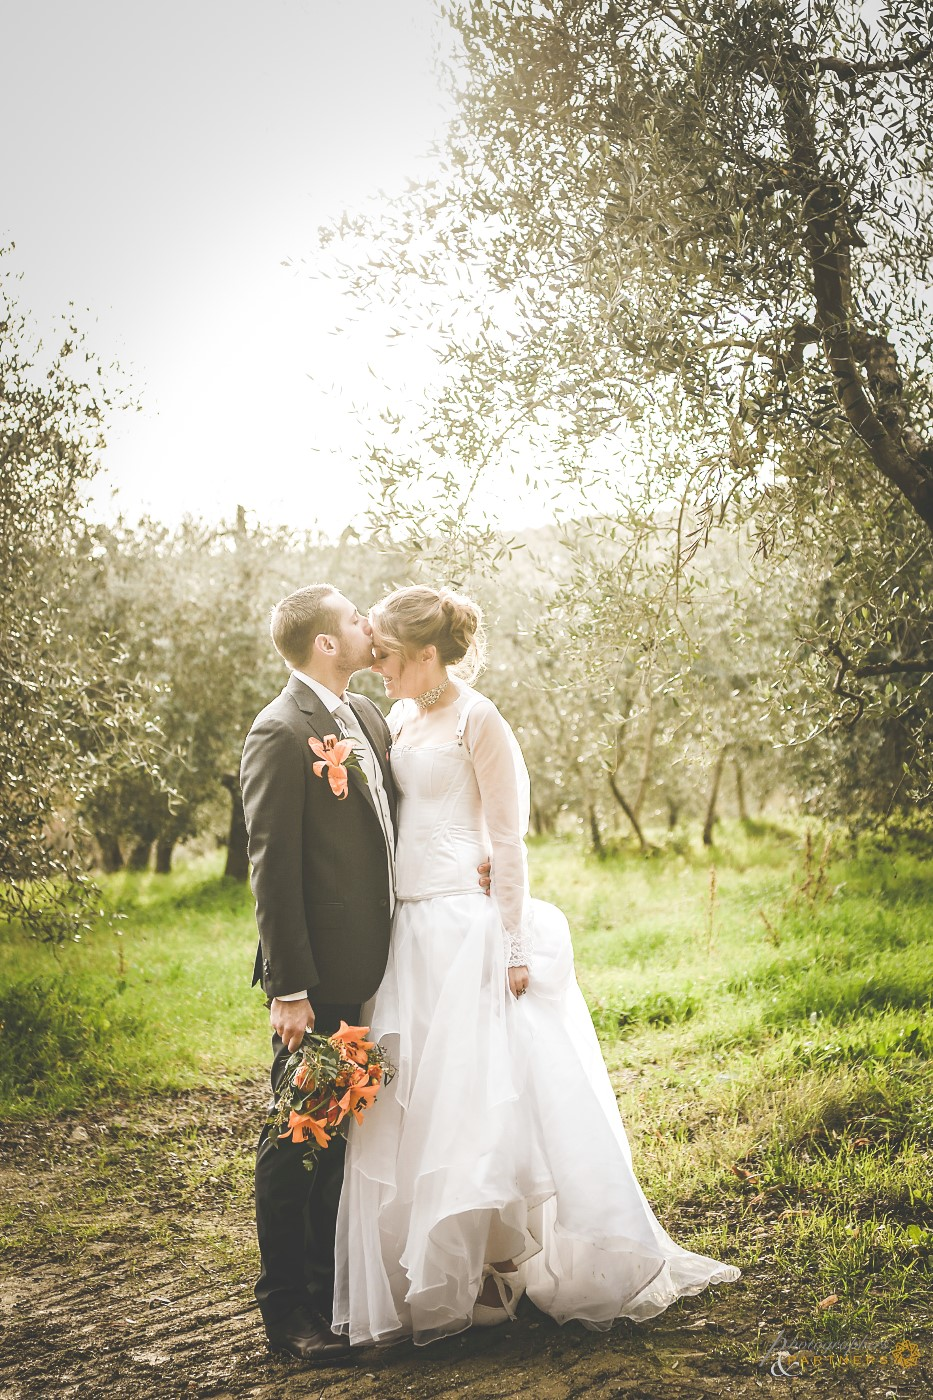 A romantic kiss among the olive trees